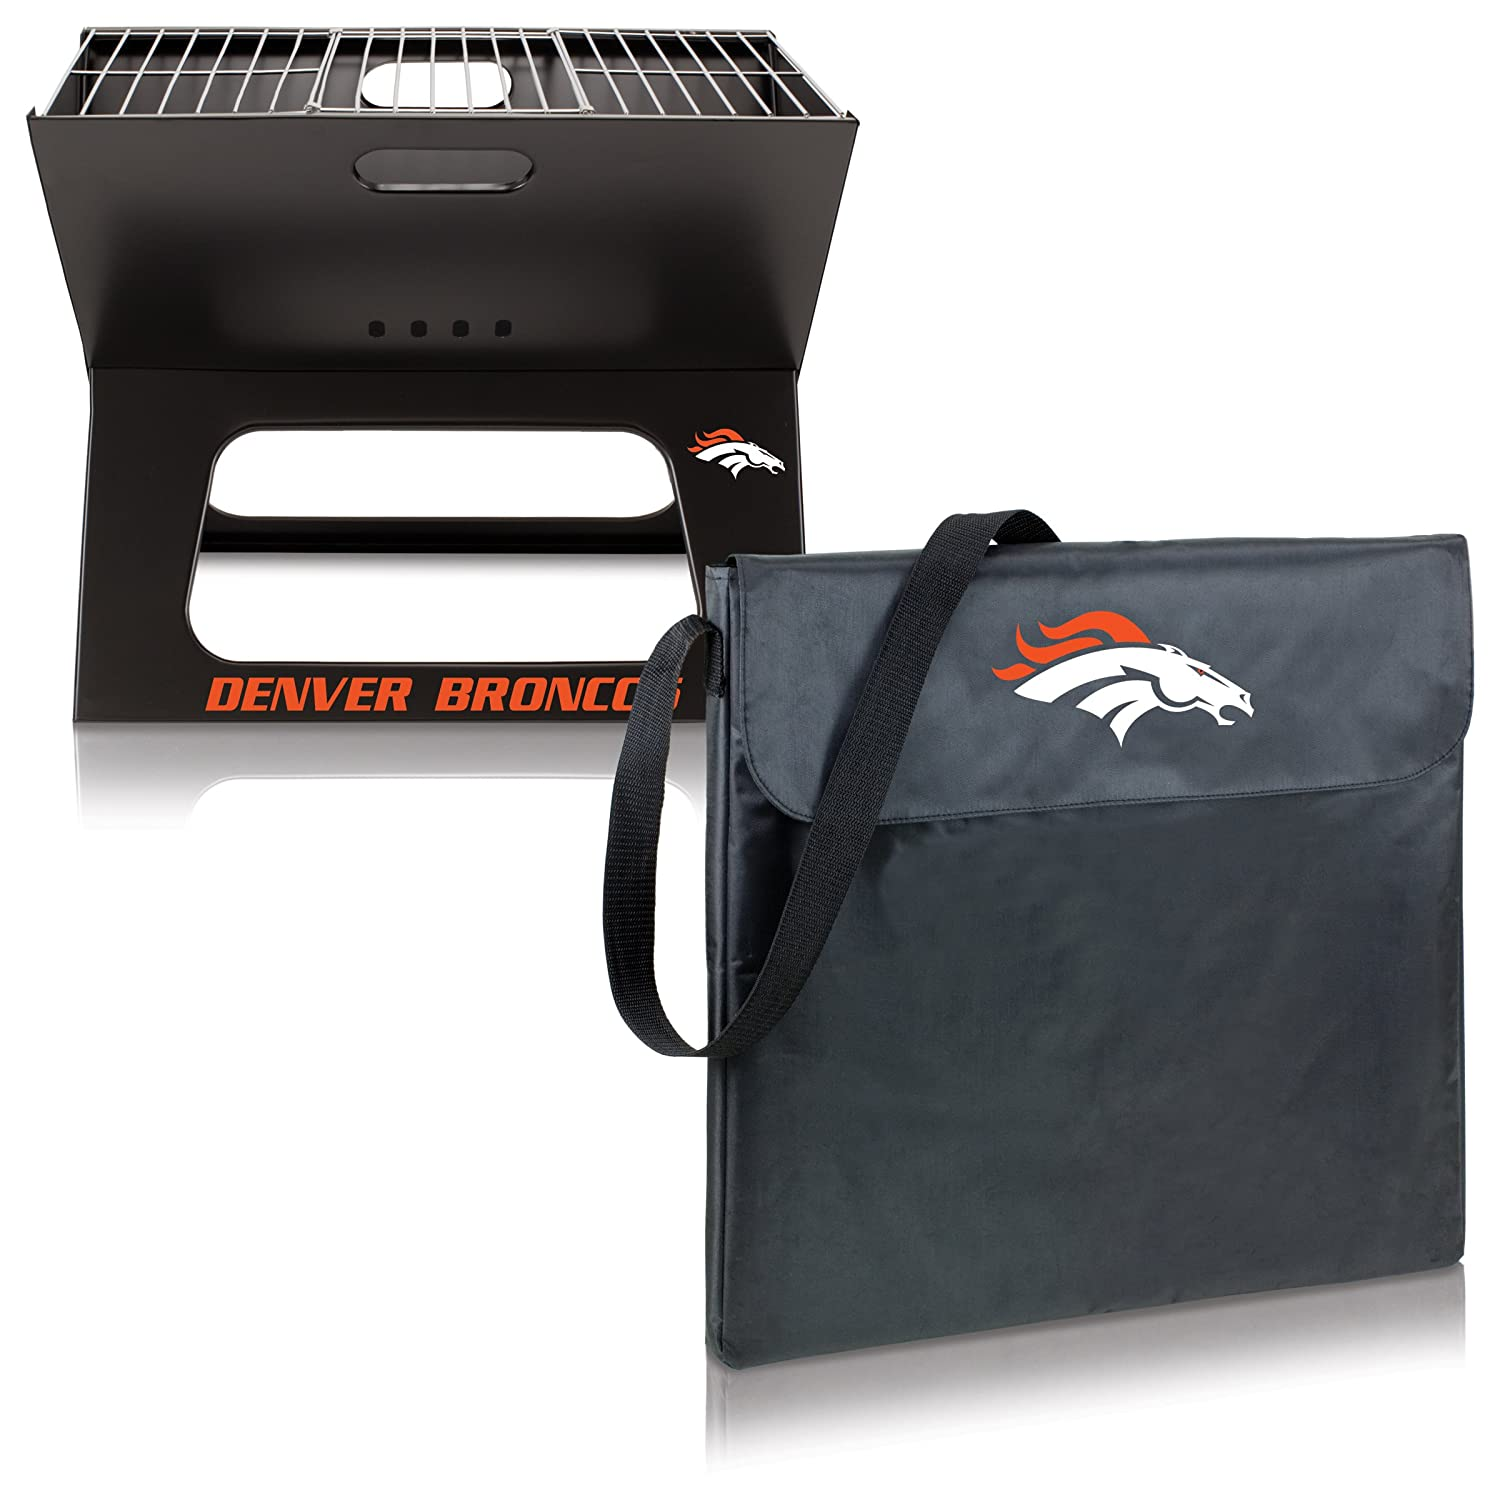 NFL Denver Broncos Portable Collapsible Charcoal X-Grill